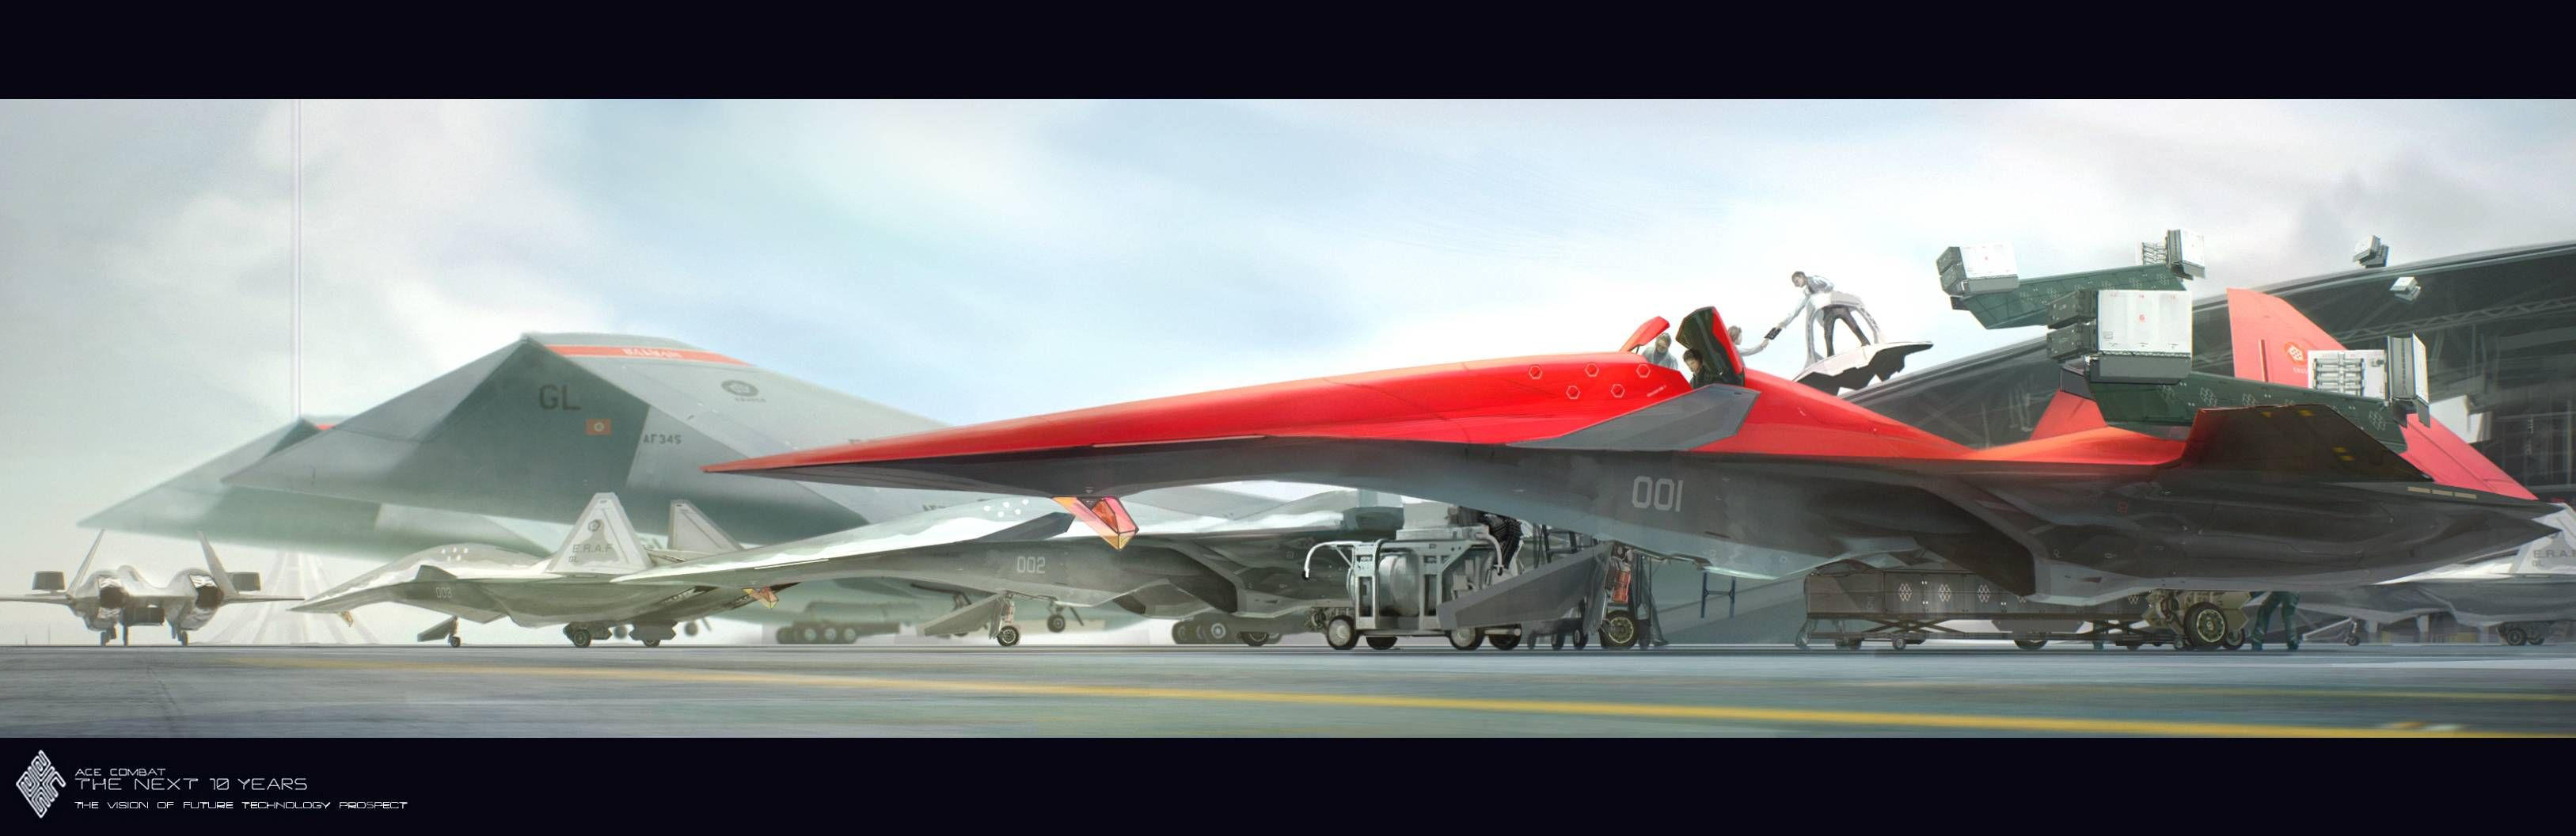 Pin By Shahzad Soonawalla On Long Live Ace Combat